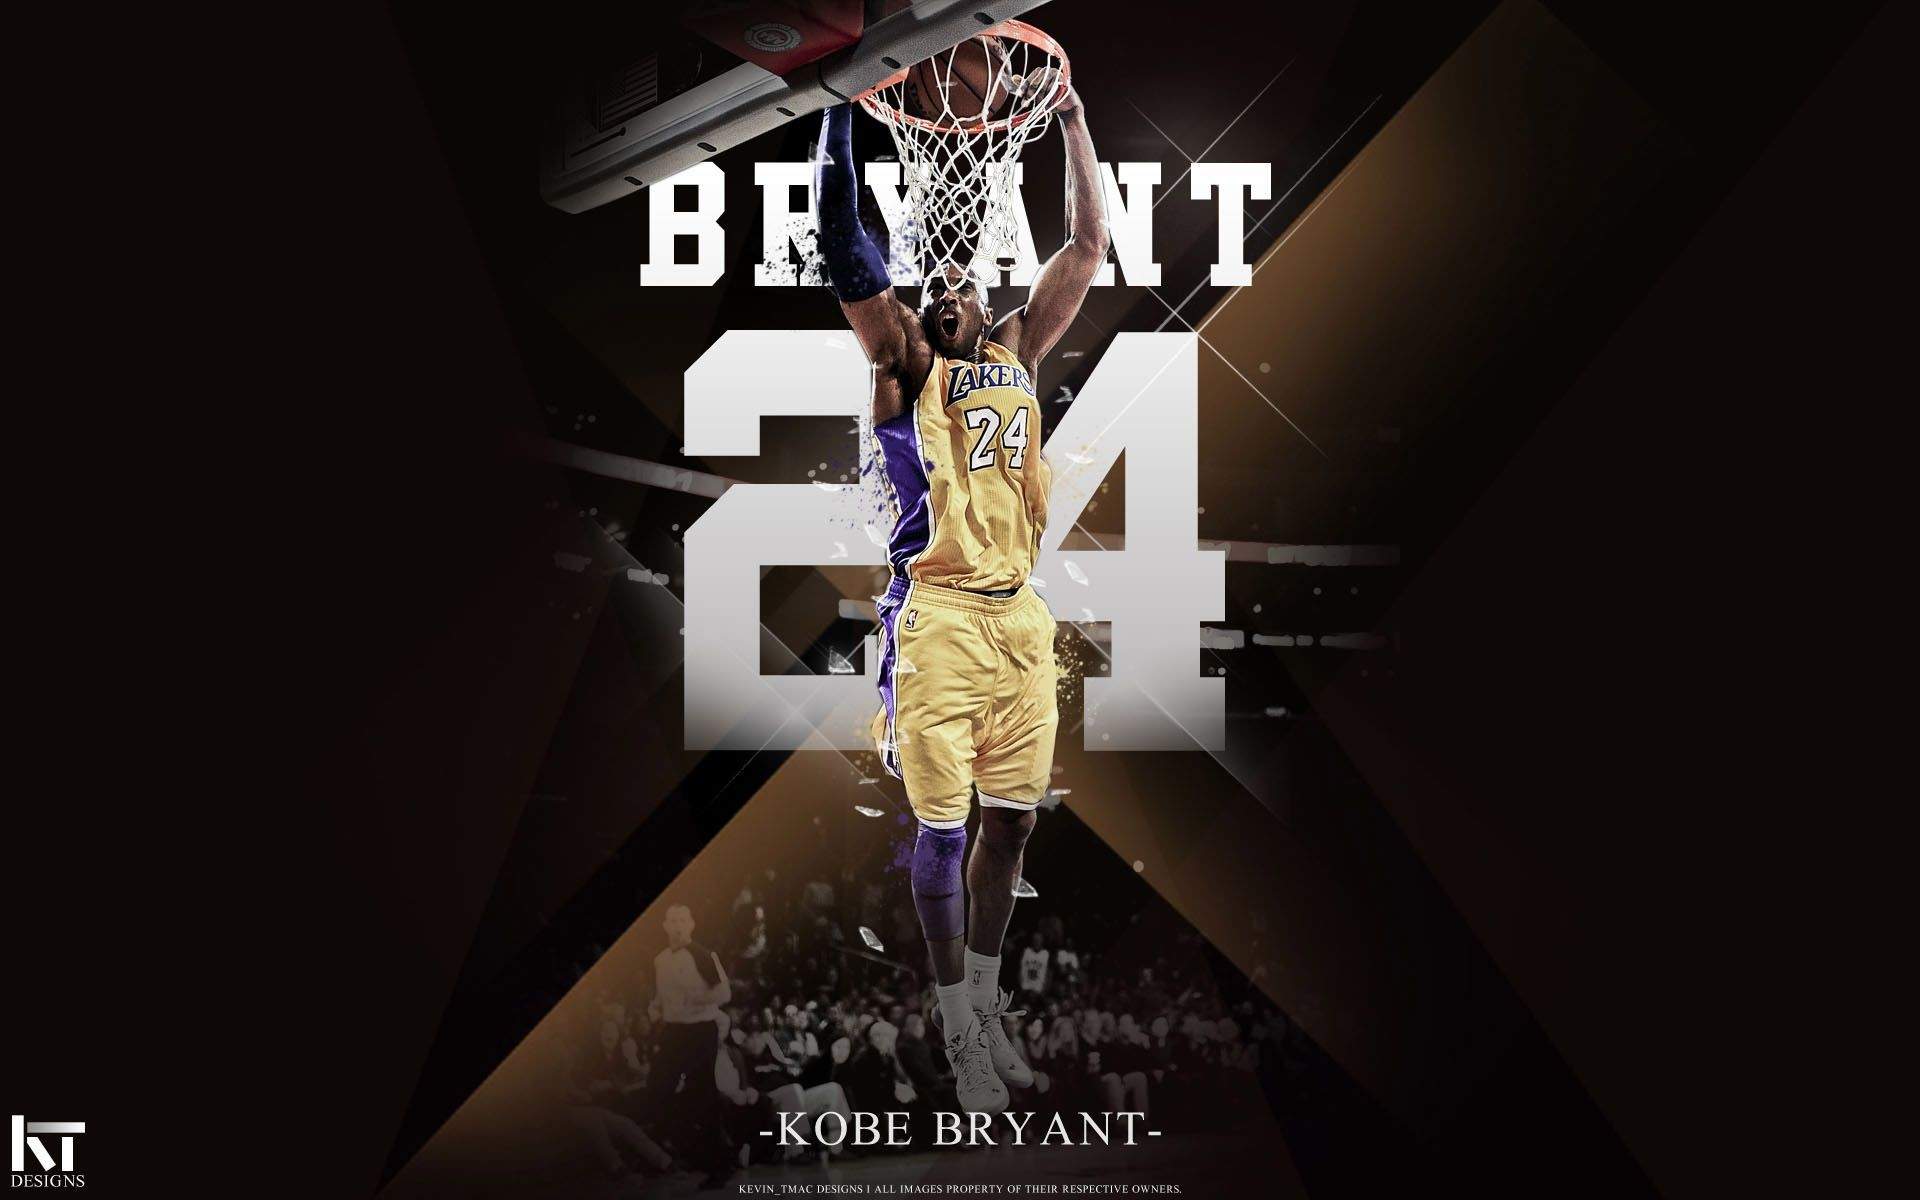 Kobe Bryant 24 Wallpaper 75 pictures 1920x1200